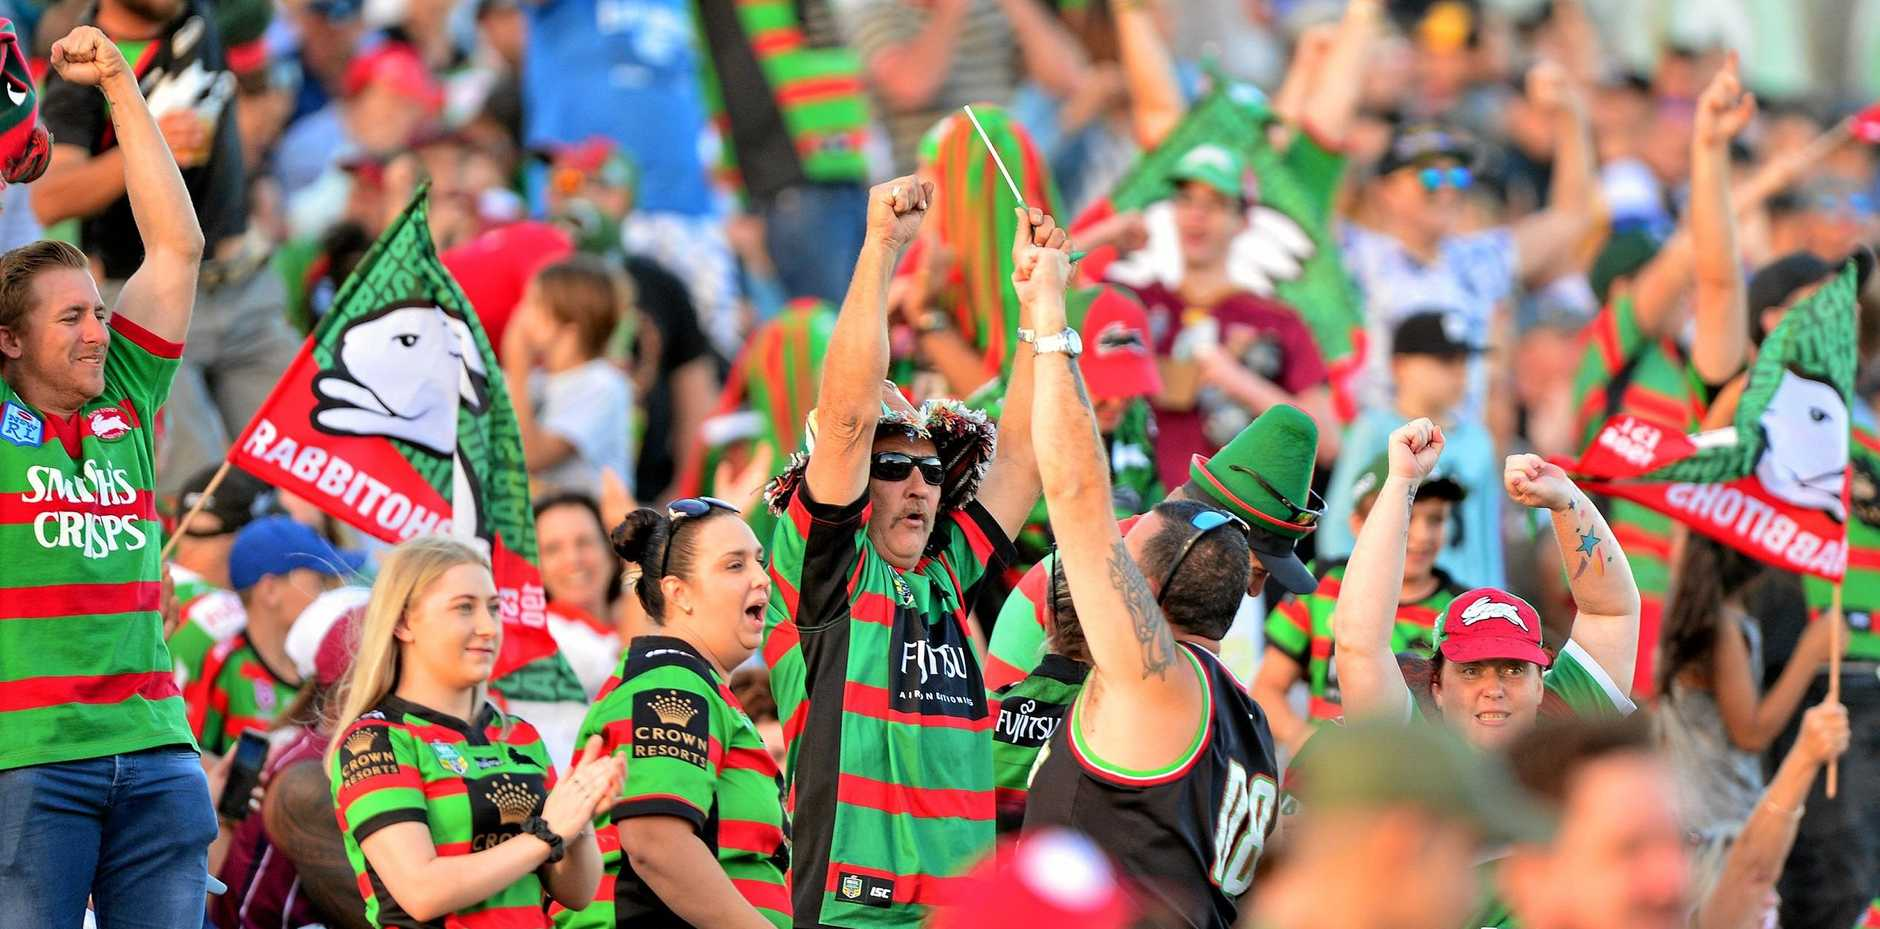 NRL action at Sunshine Coast Stadium between New Zealand Warriors and the South Sydney Rabbitohs. A record crowd of 11,912.